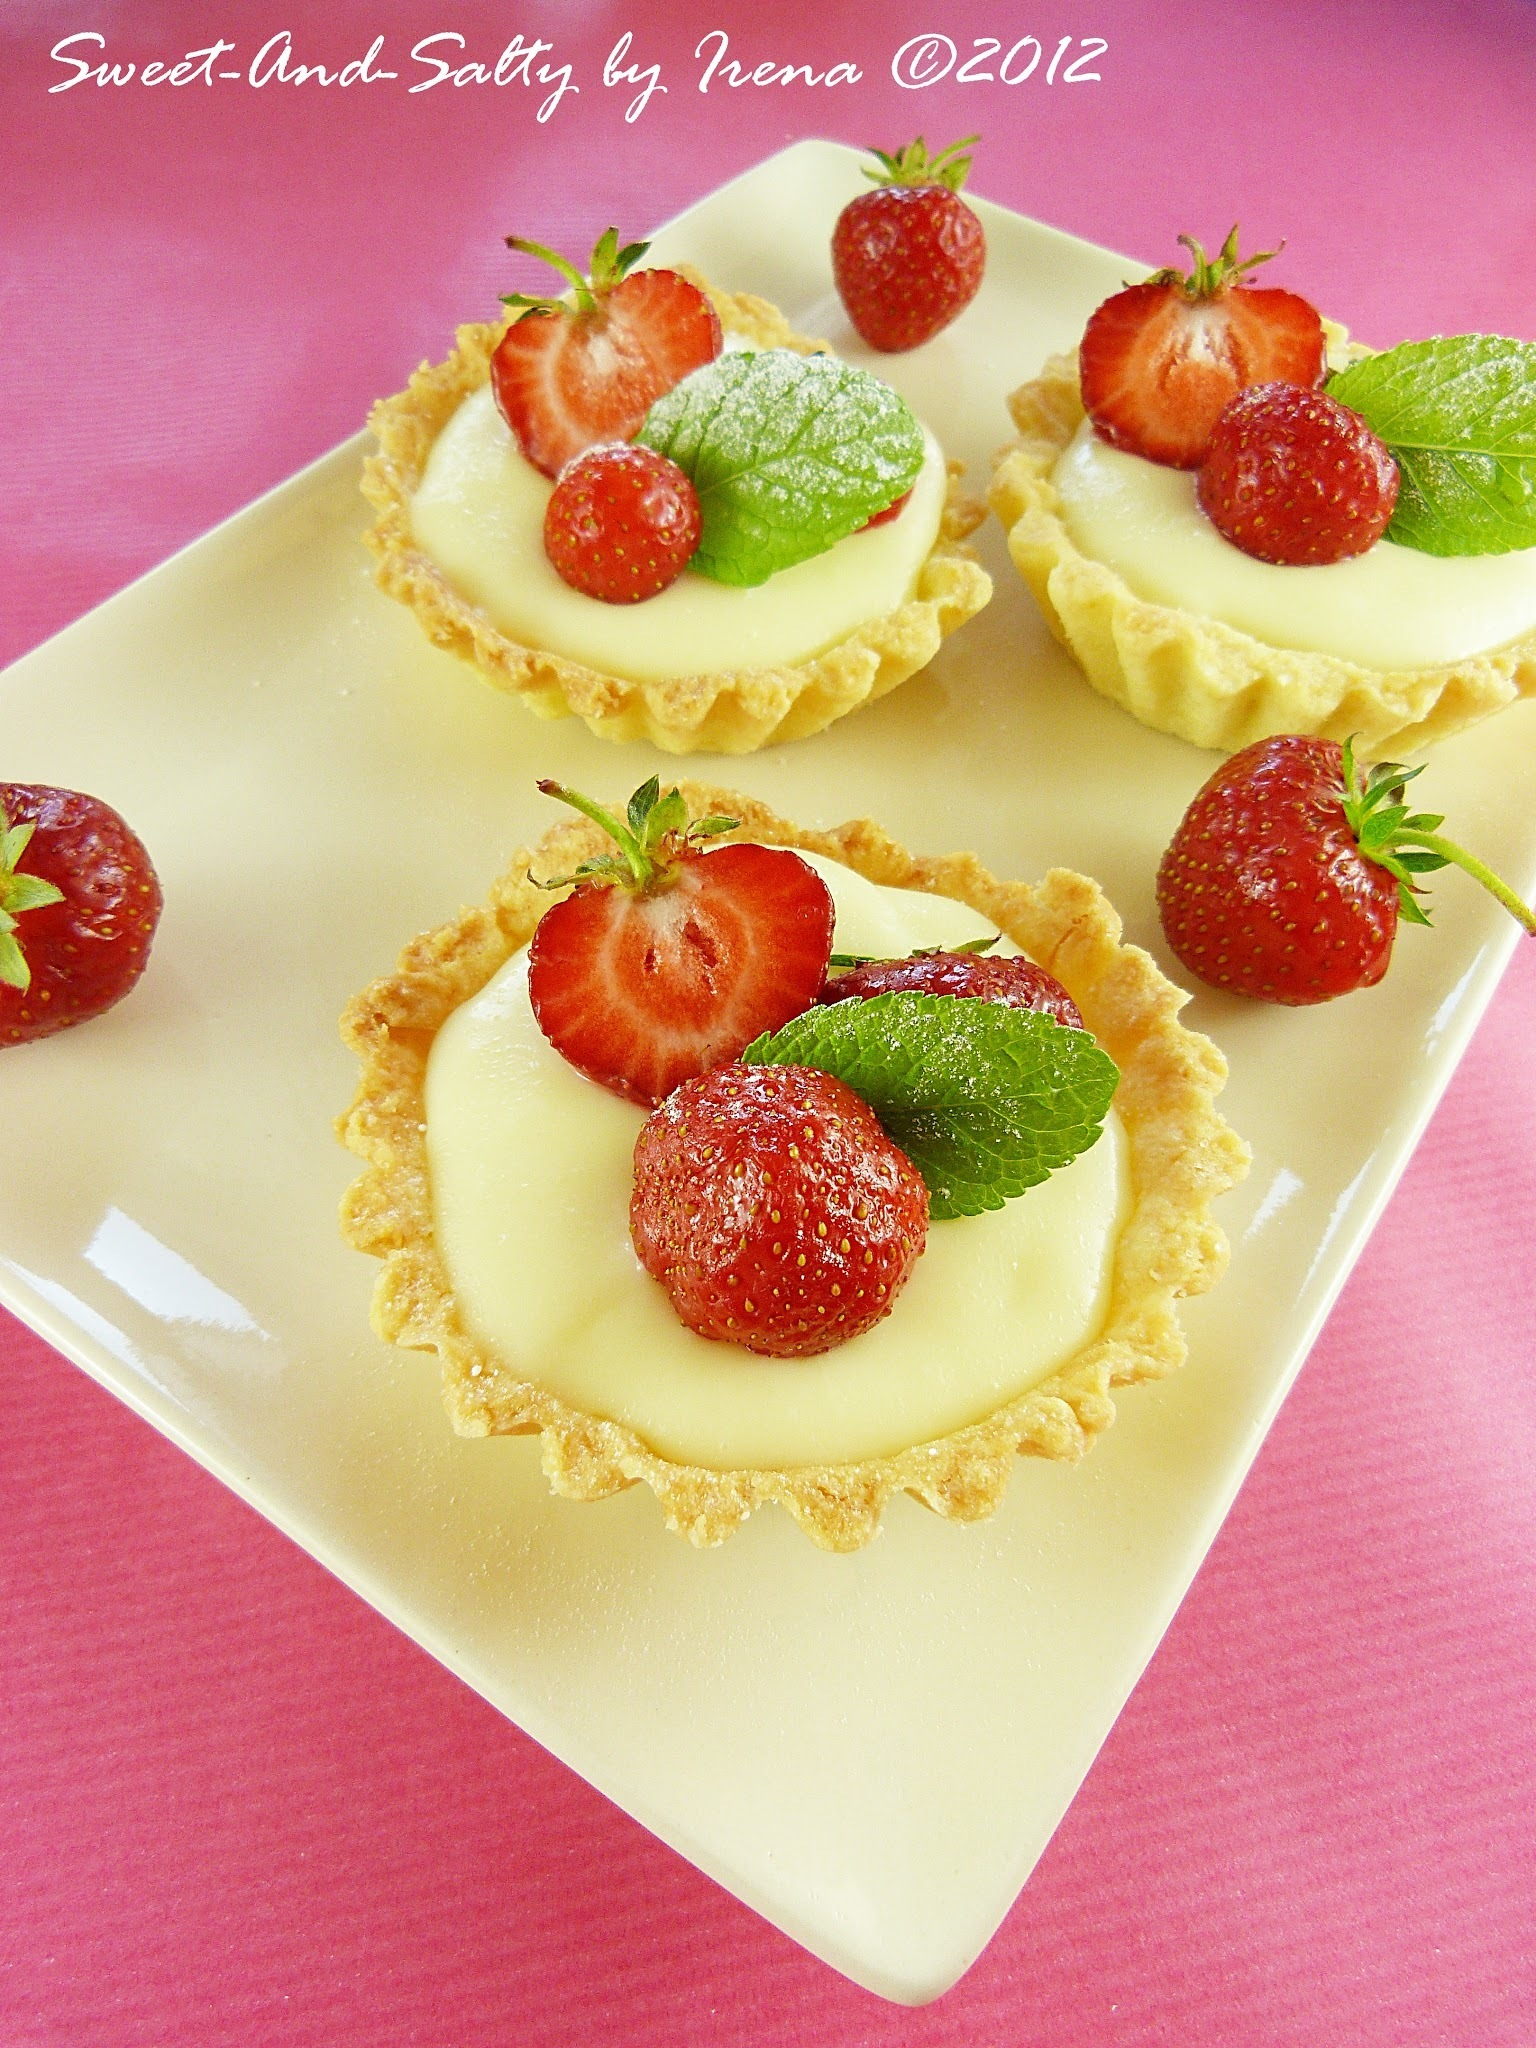 Tartići sa belom čokoladom i jagodama / White Chocolate And Strawberries Tarts